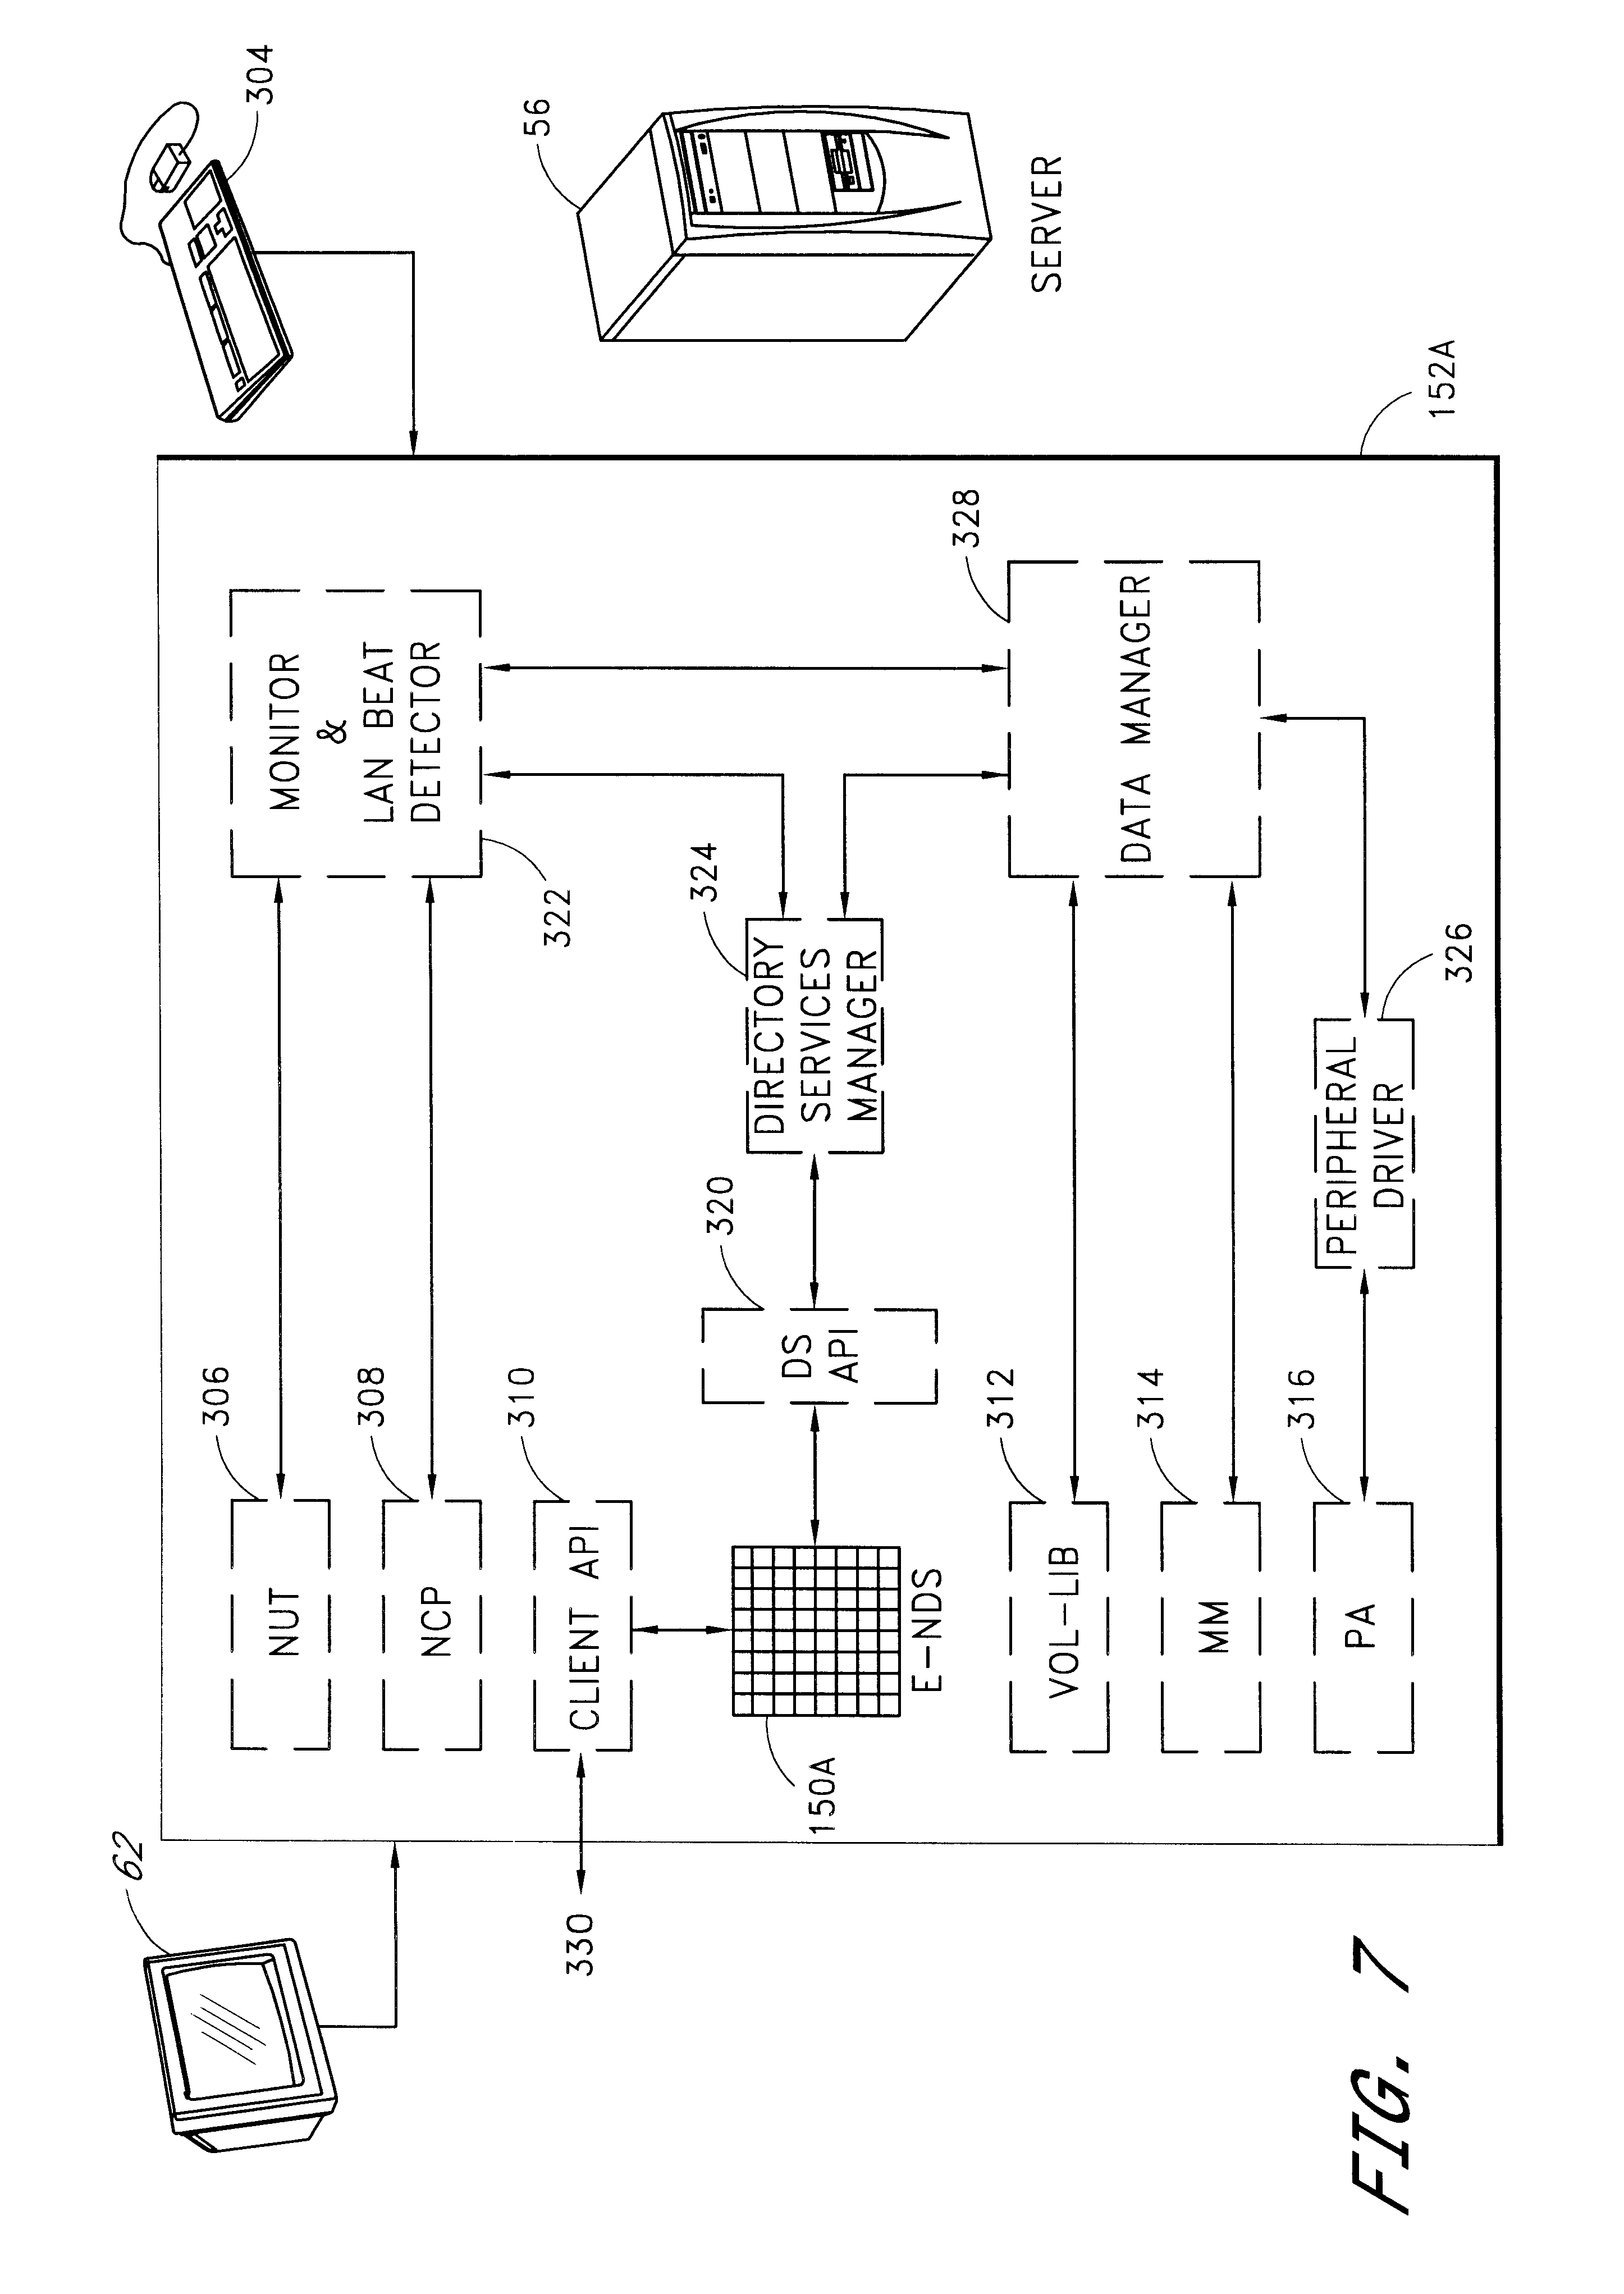 Patent Us 6292905 B1 Fig2 It Has Been Attached An Image Of The Motherboard Block Diagram 0 Petitions